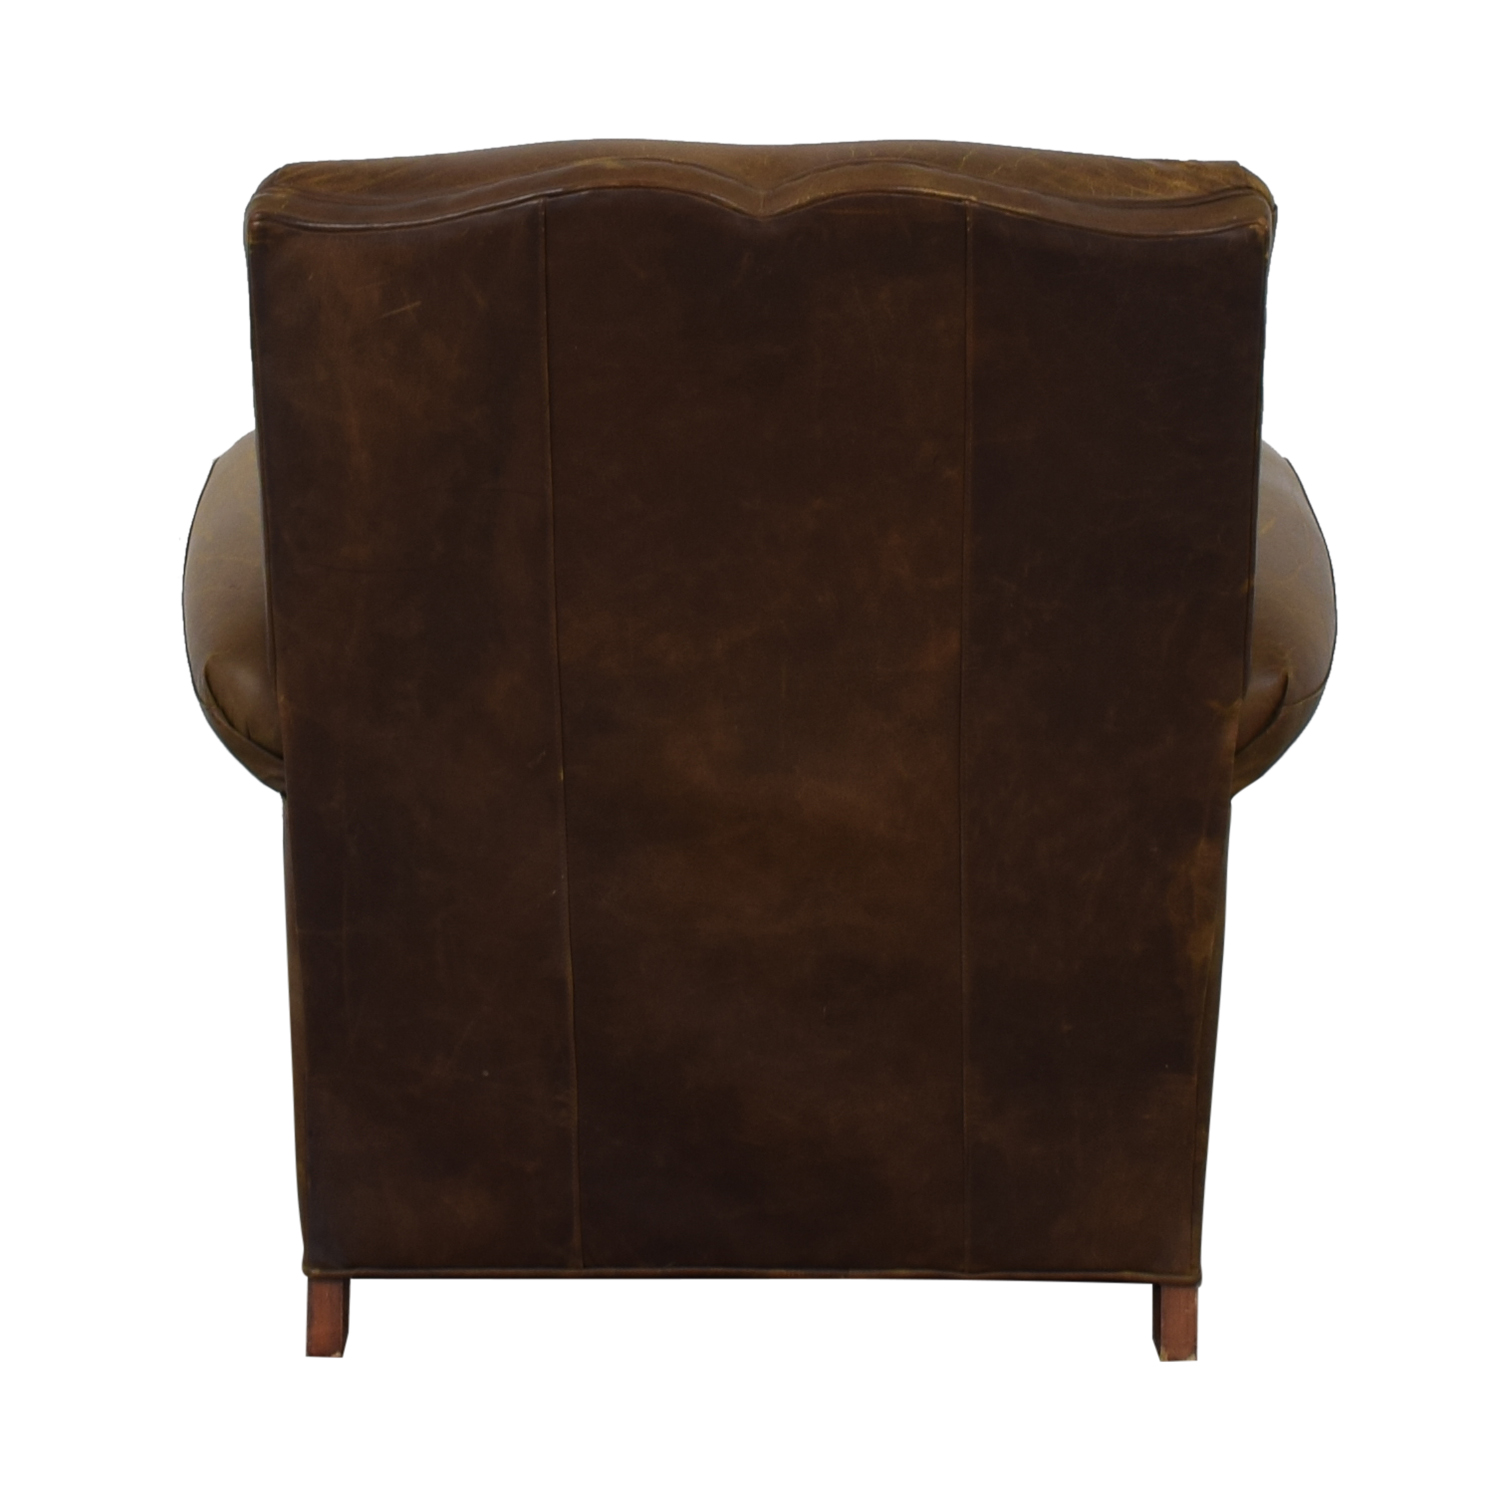 Zagaroli Classics Zagaroli Classics Leather Club Reclining Chair nj